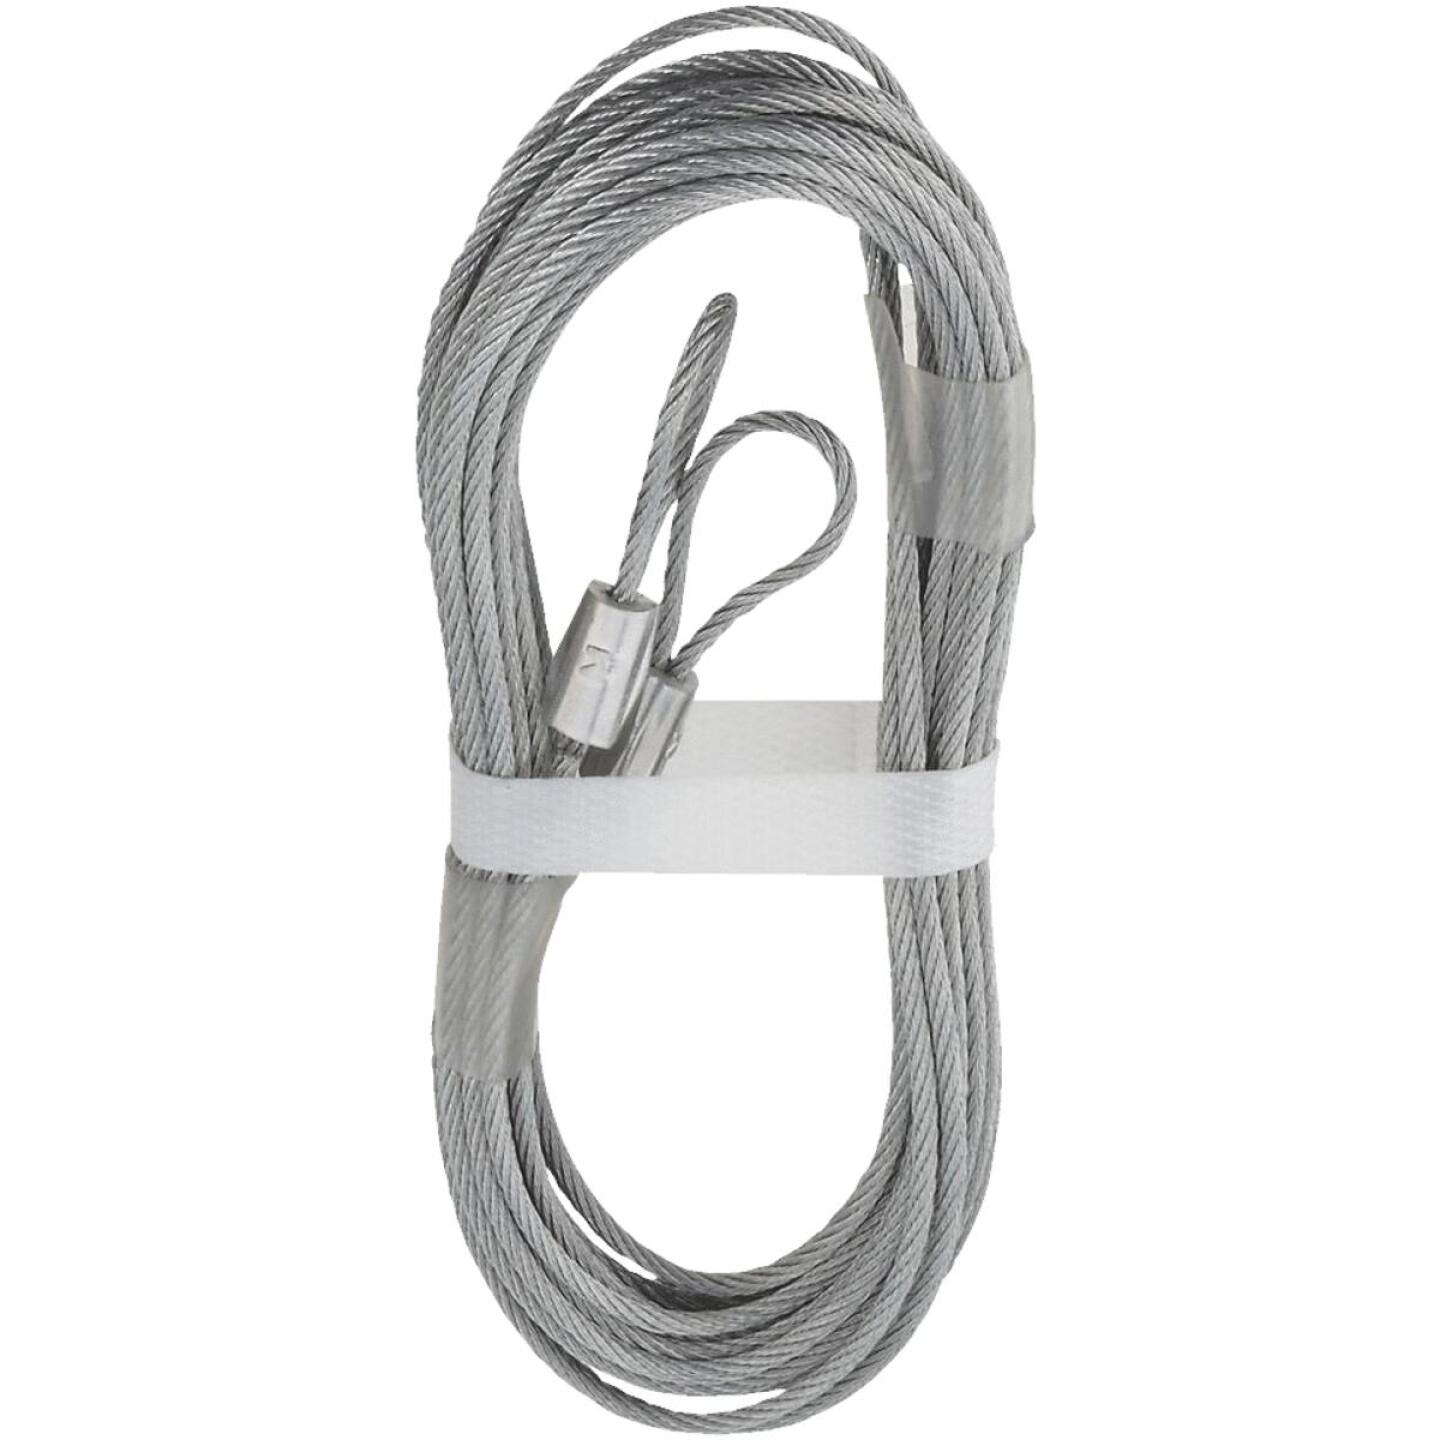 National 3-32 In. Dia. x 12 Ft. L. Garage Door Extension Spring Lift Cable (2 Count) Image 1